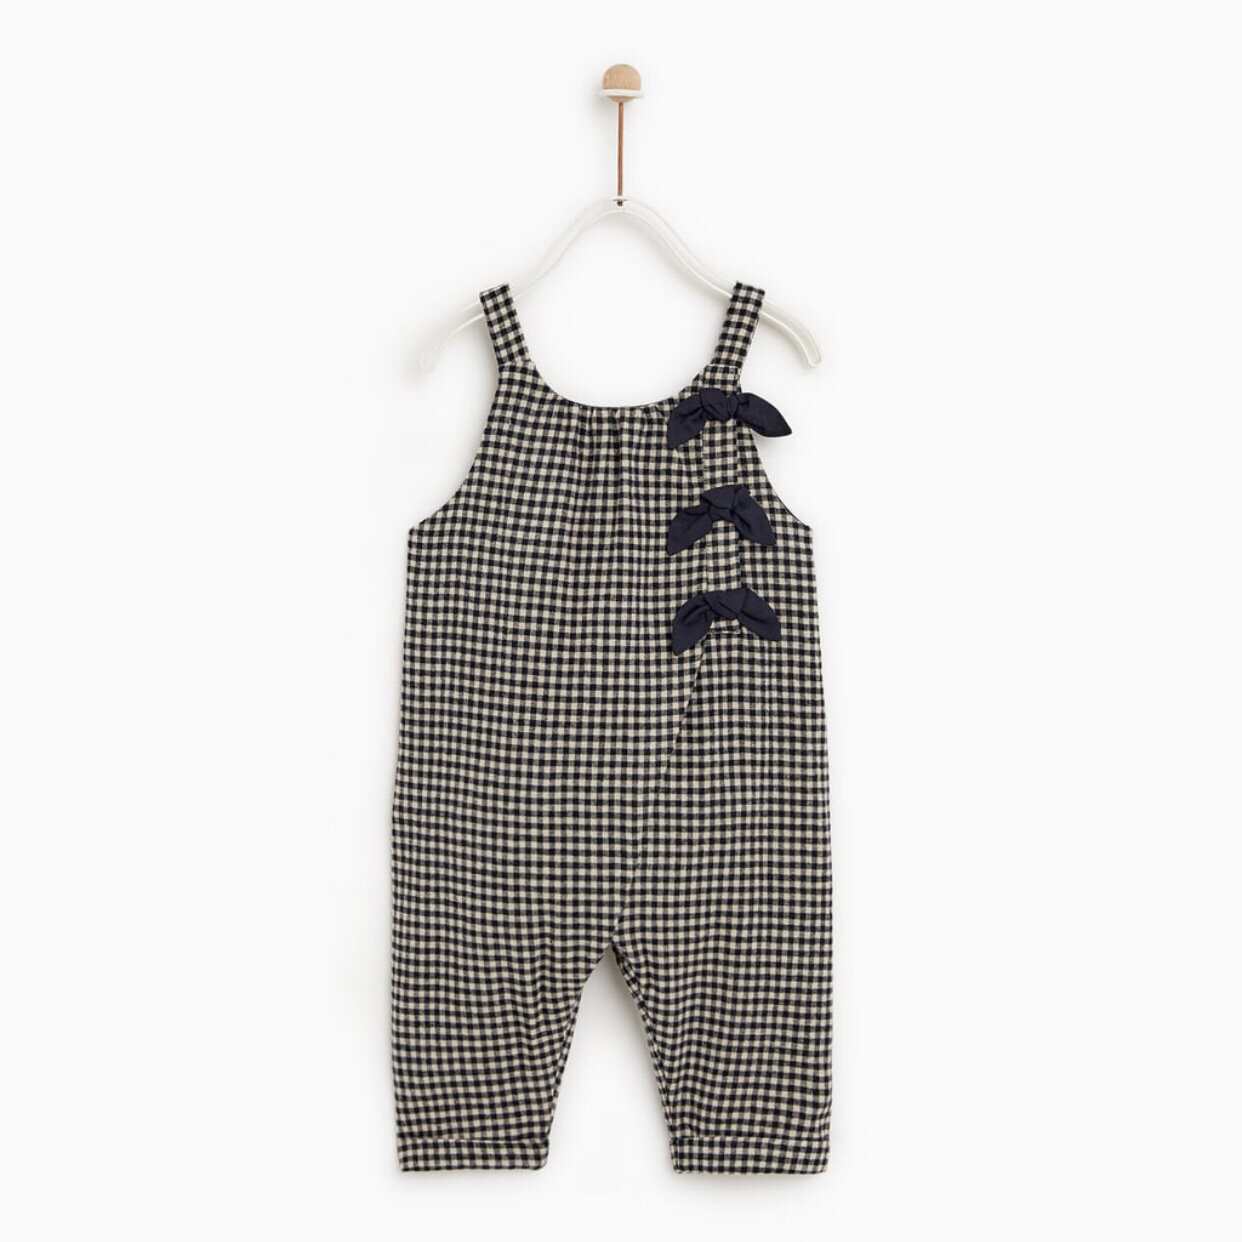 Zara Baby Plaid Romper